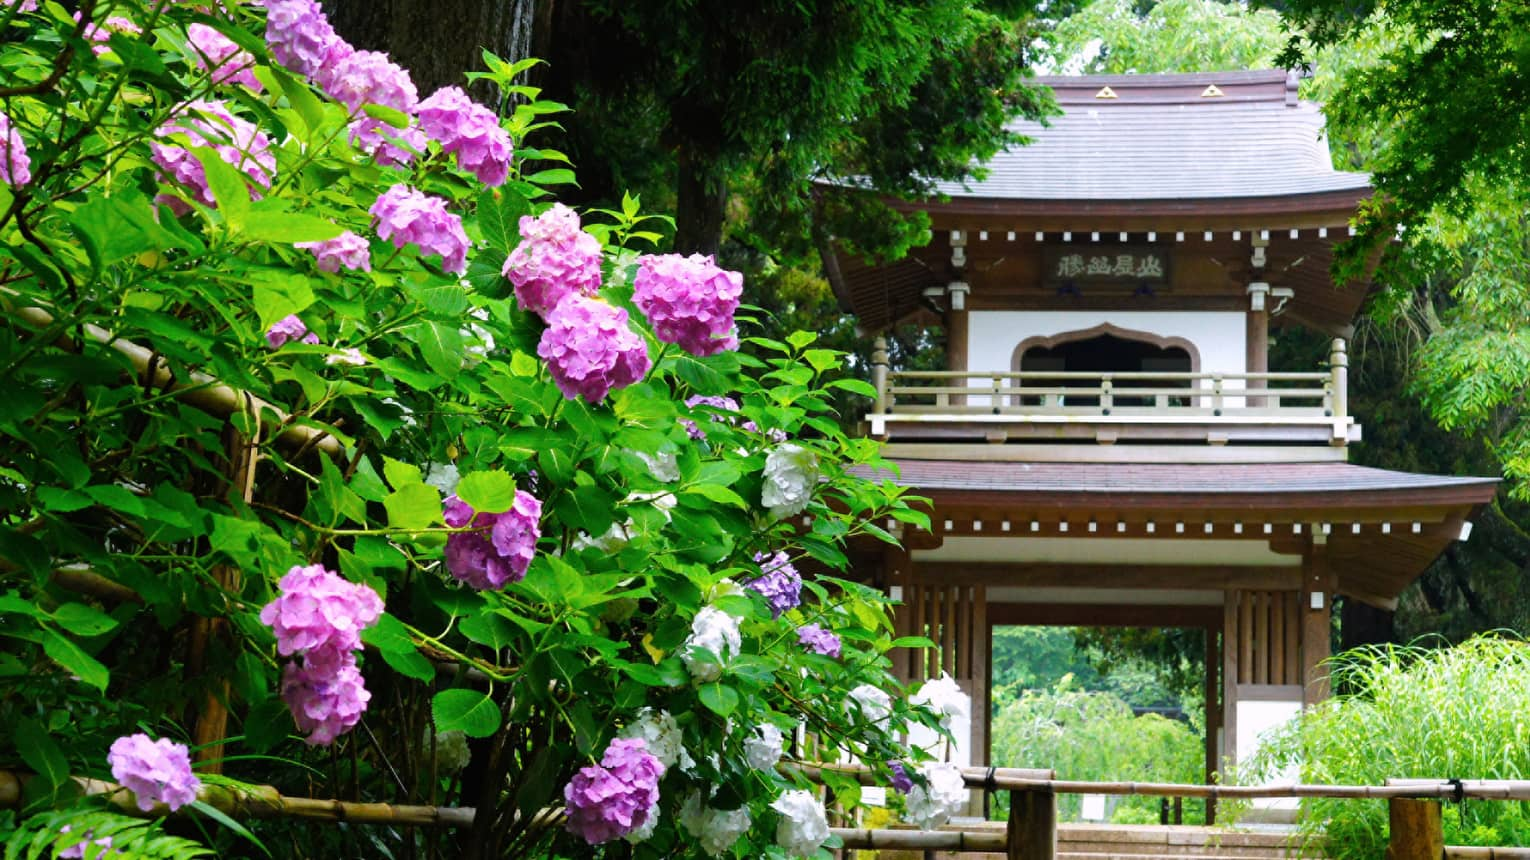 Wood temple entrance in garden by large bush with purple flowers